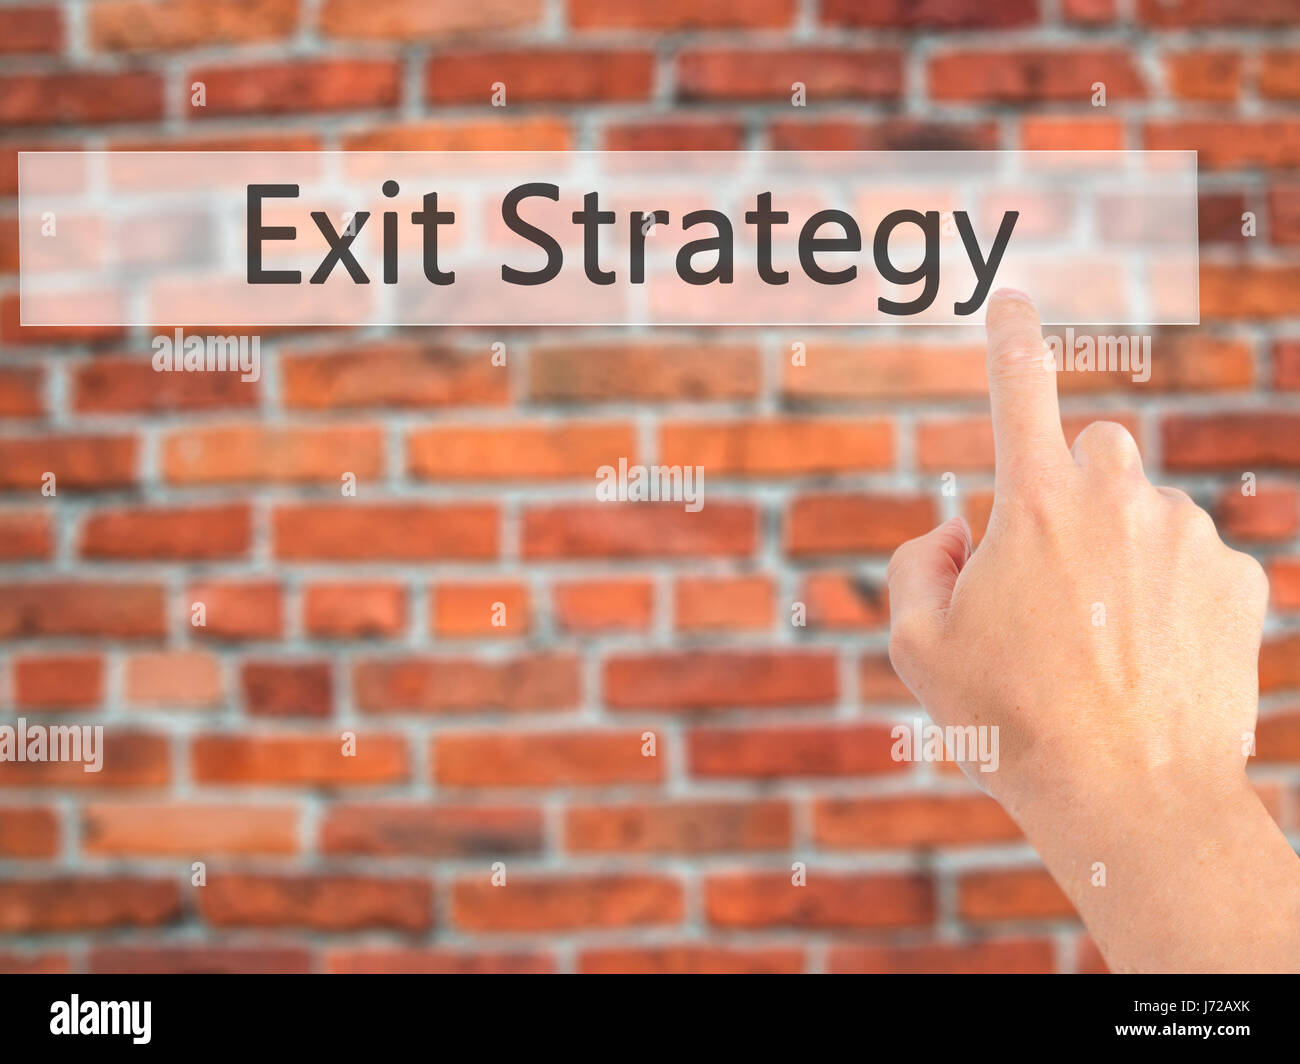 Exit Strategy - Hand pressing a button on blurred background concept . Business, technology, internet concept. Stock Stock Photo